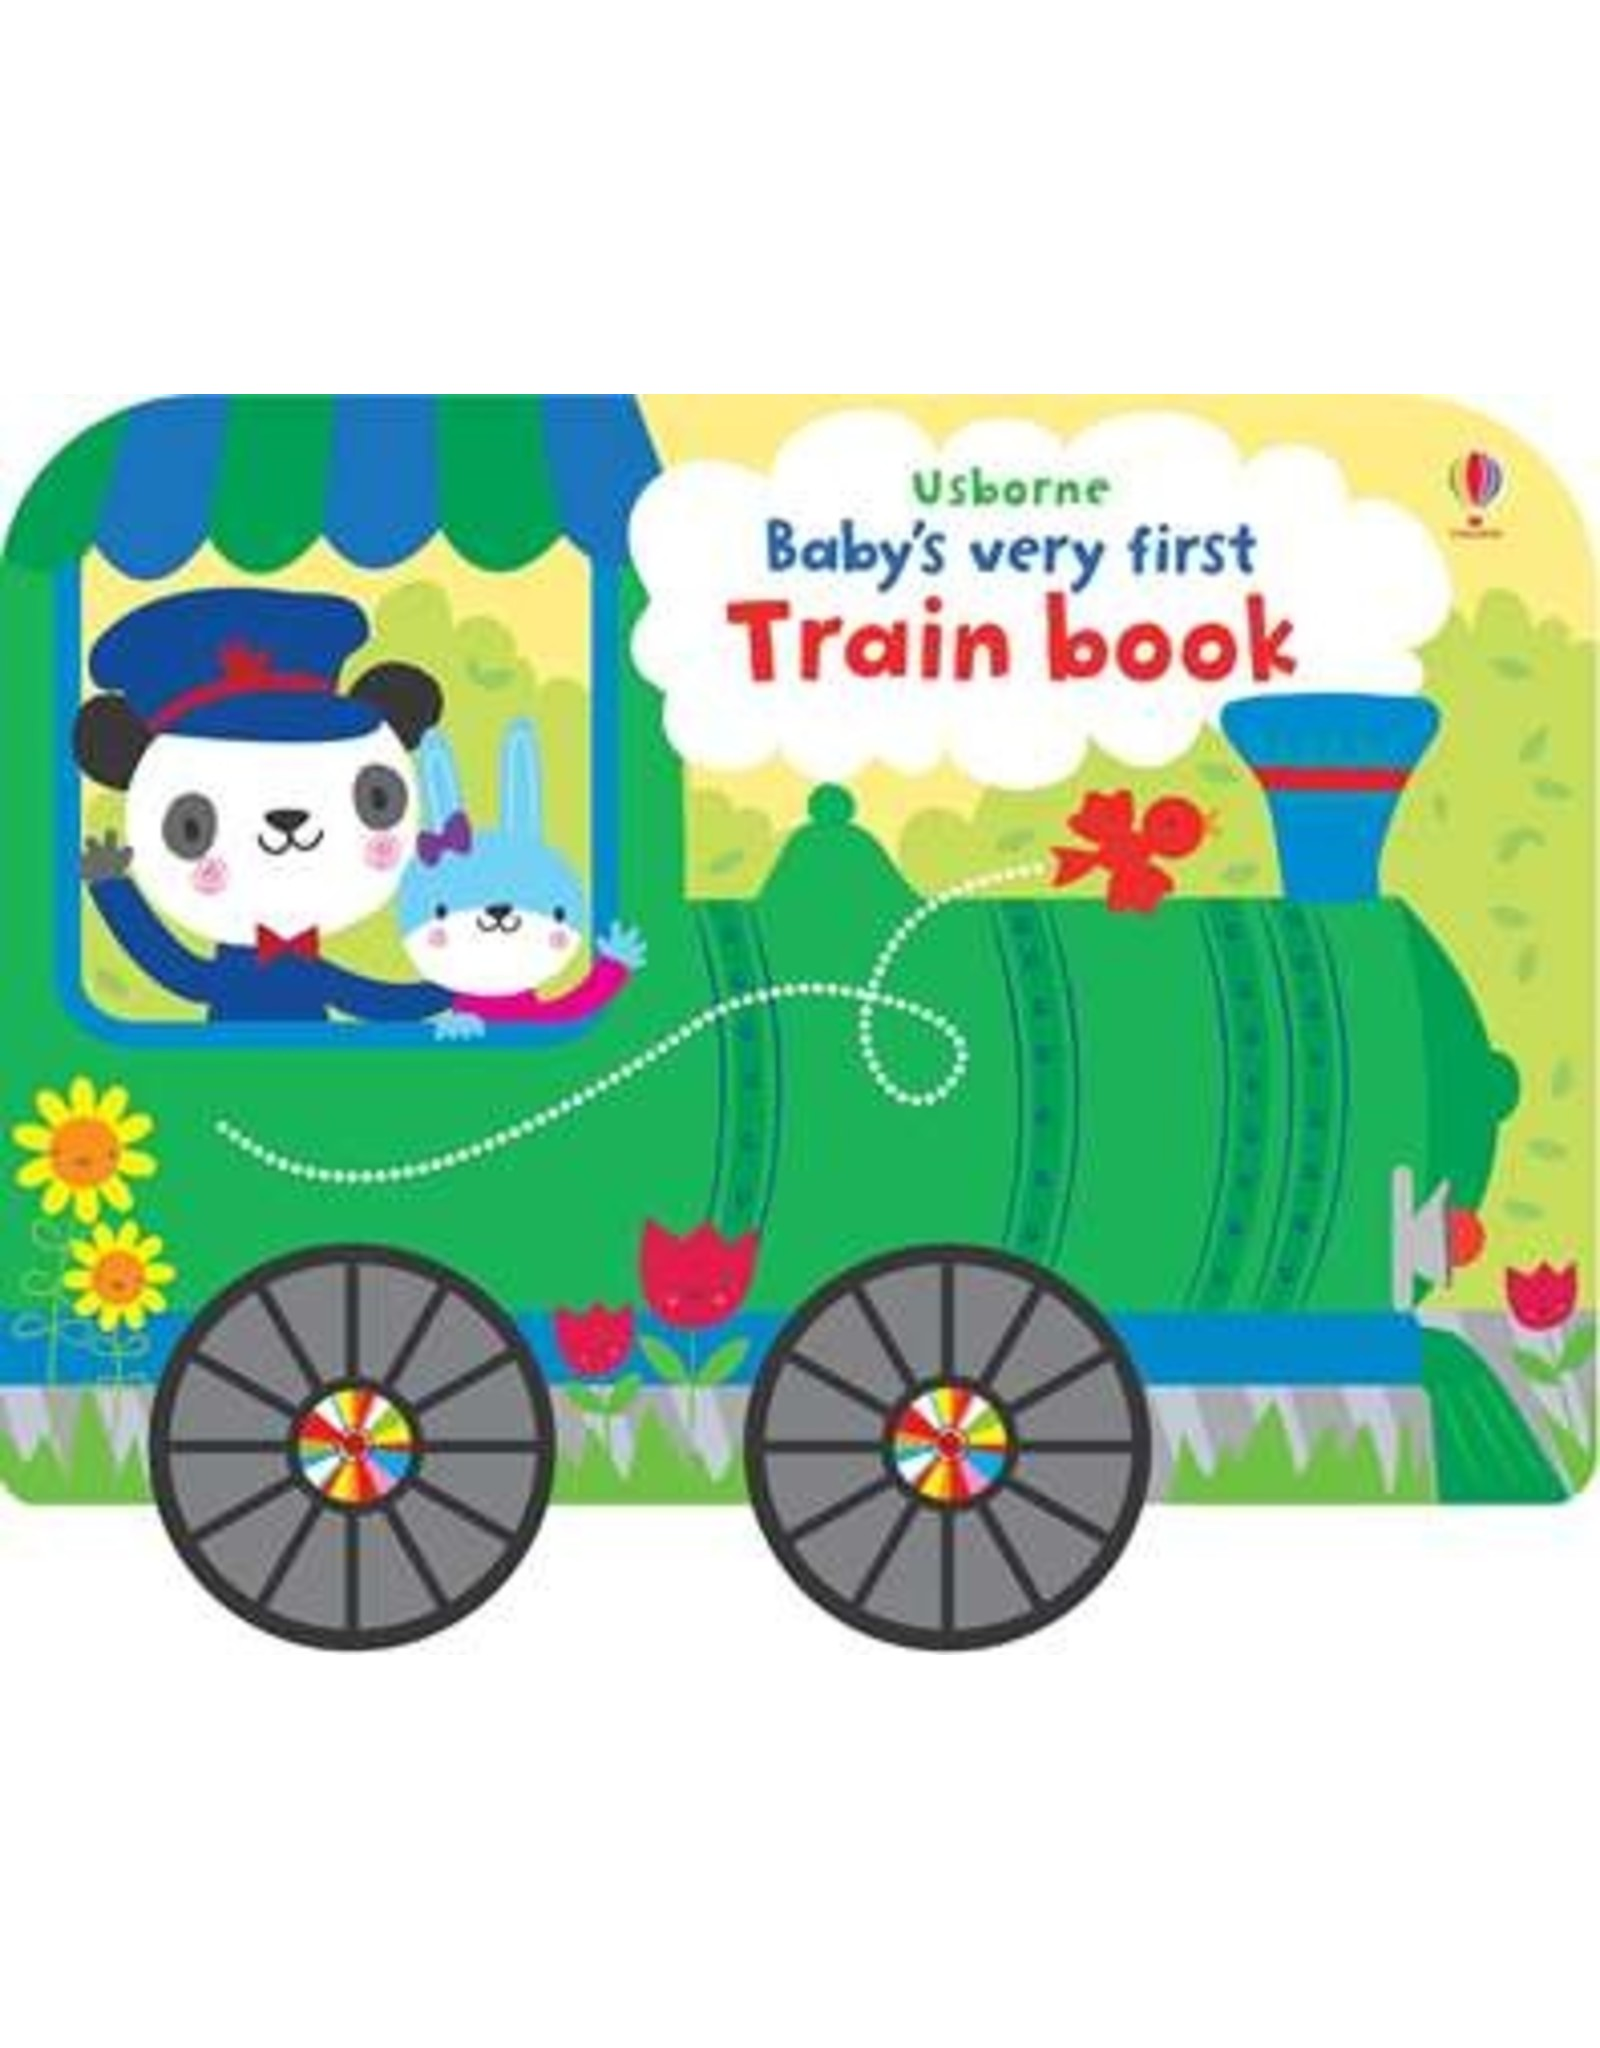 Usborne & Kane Miller Books Baby's Very First Train Book